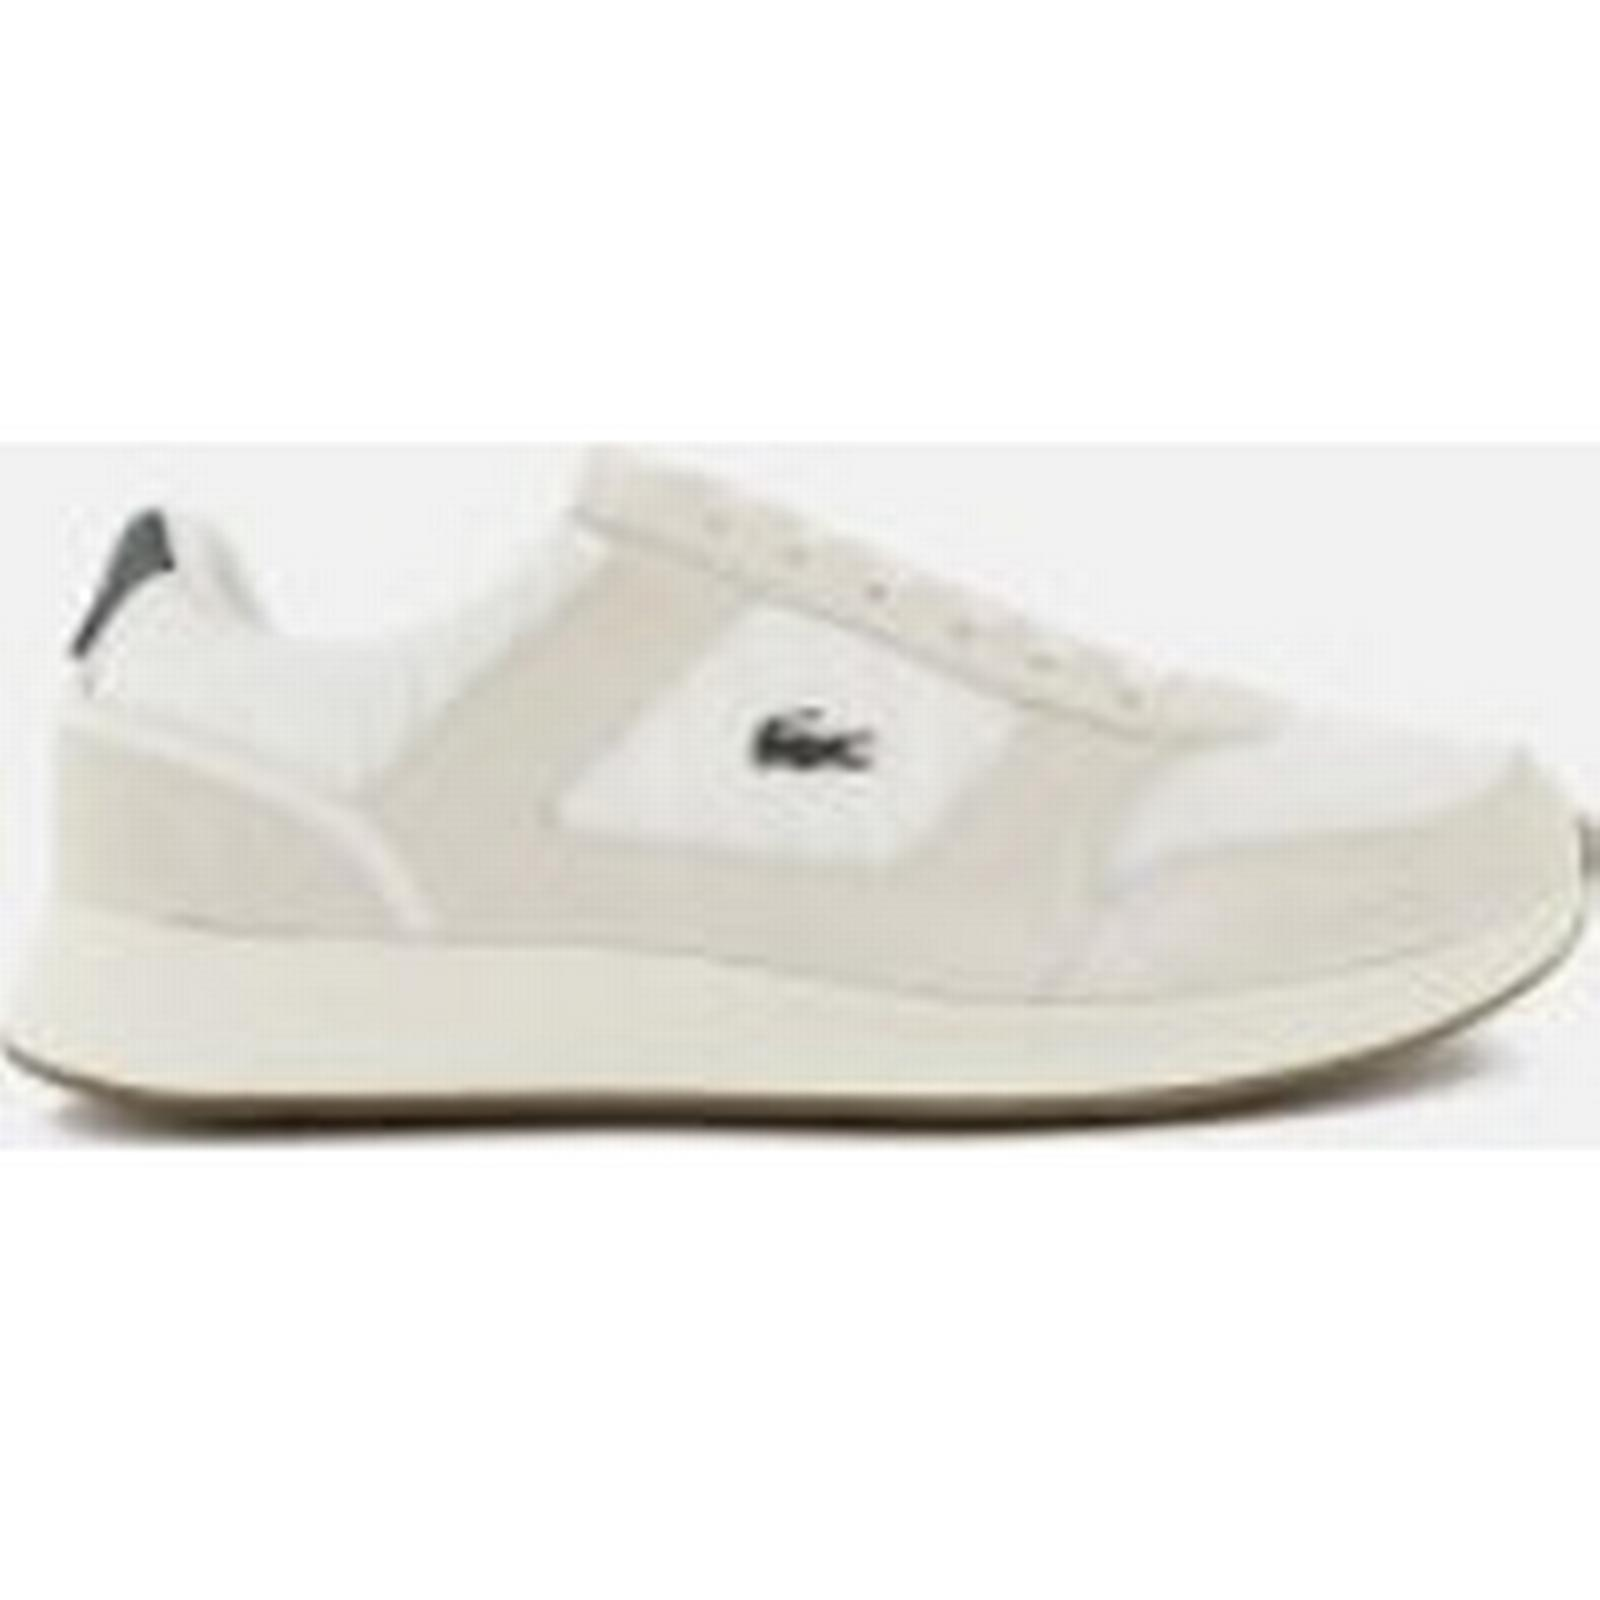 Lacoste Runner Men's Joggeur 118 1 Runner Lacoste Trainers - Off White/Dark Green e07faa